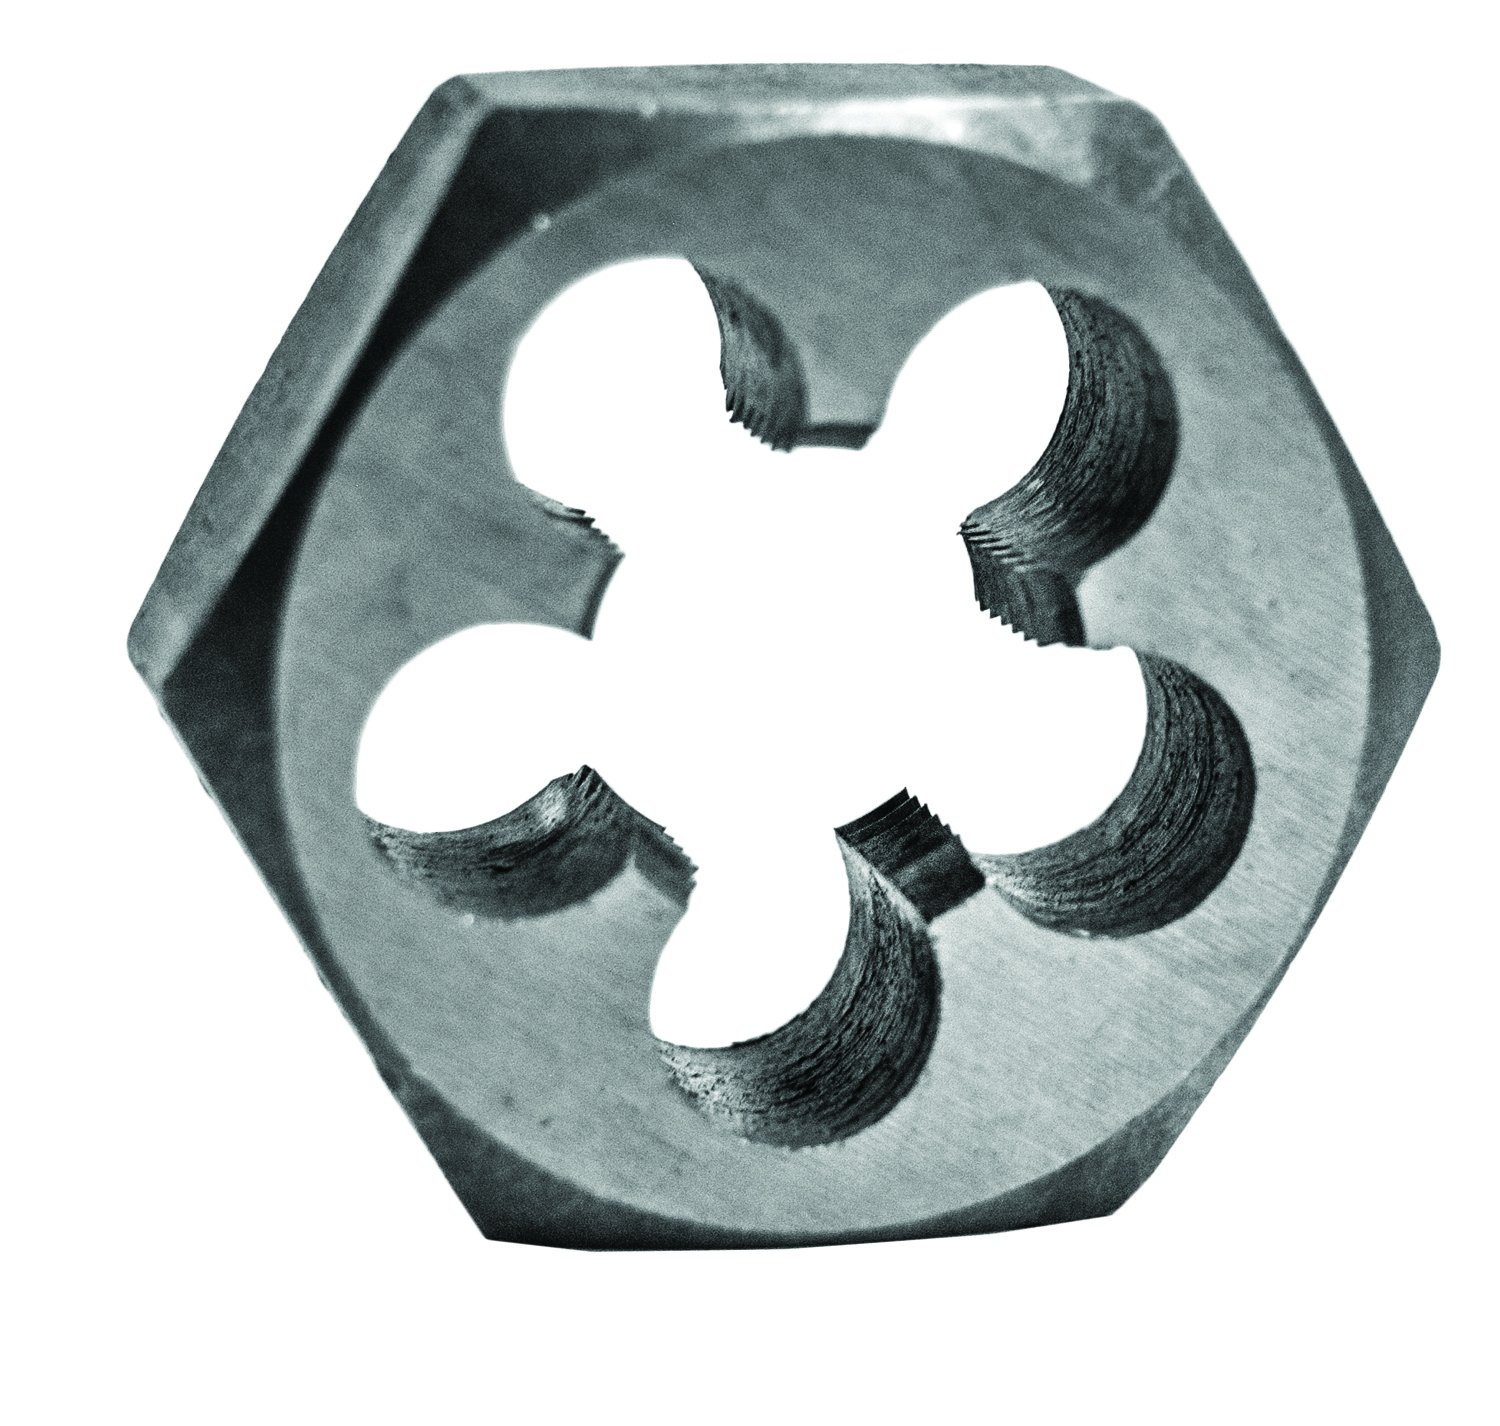 Century Drill /& Tool 98214 High Carbon Steel Fractional Hexagon Die 5//8-18 NF